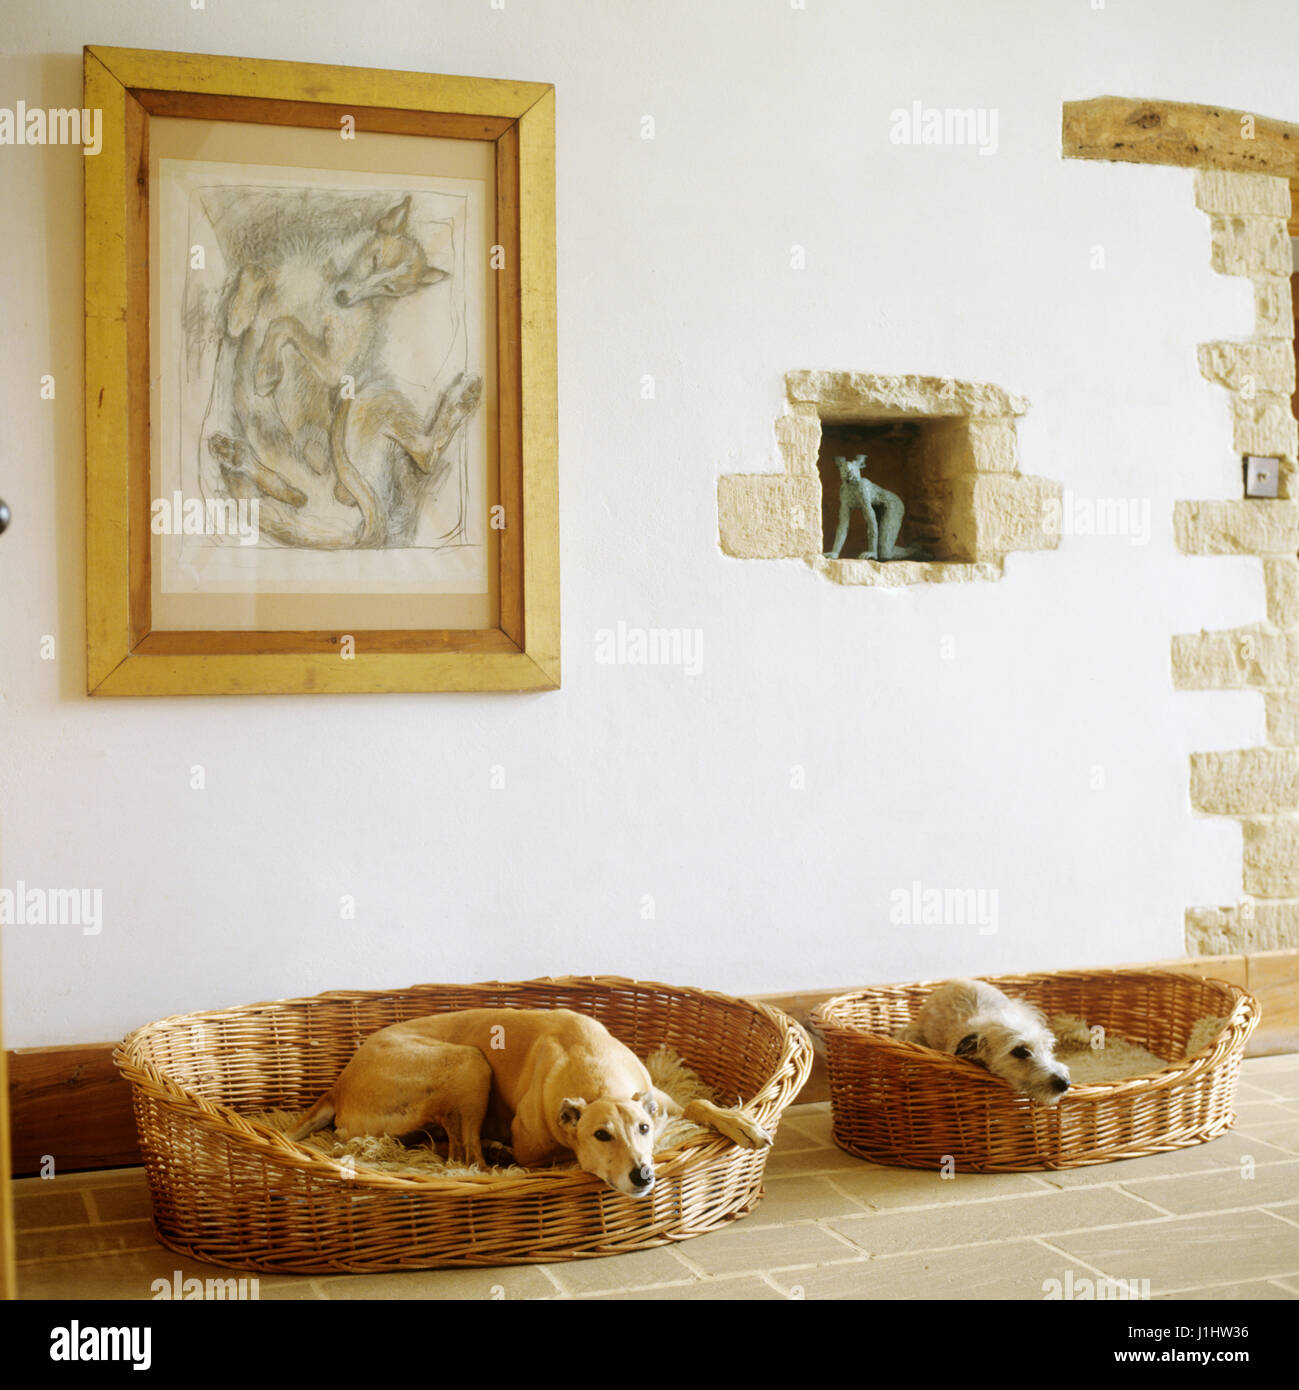 Two dogs lying in dog beds. - Stock Image